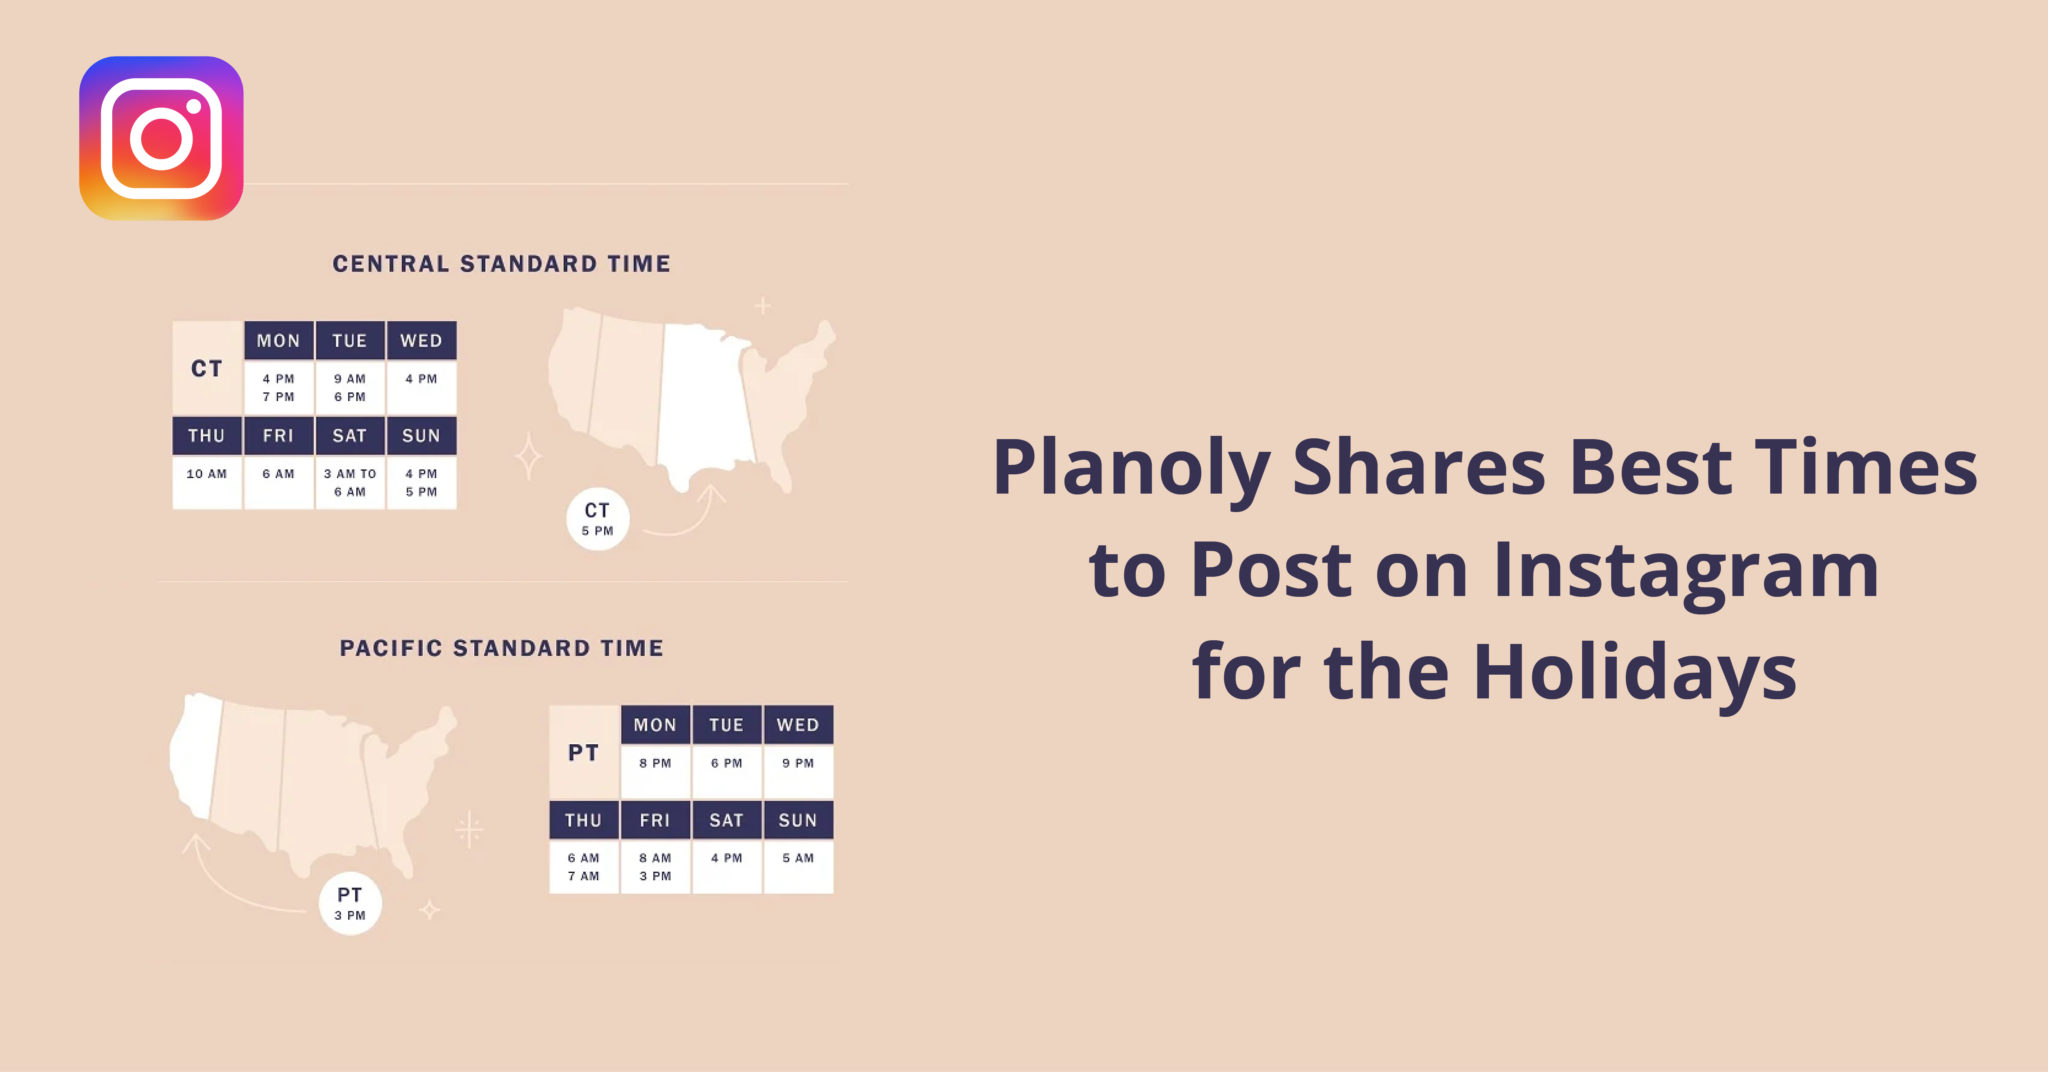 Planoly Shares Best Times to Post on Instagram for the Holidays